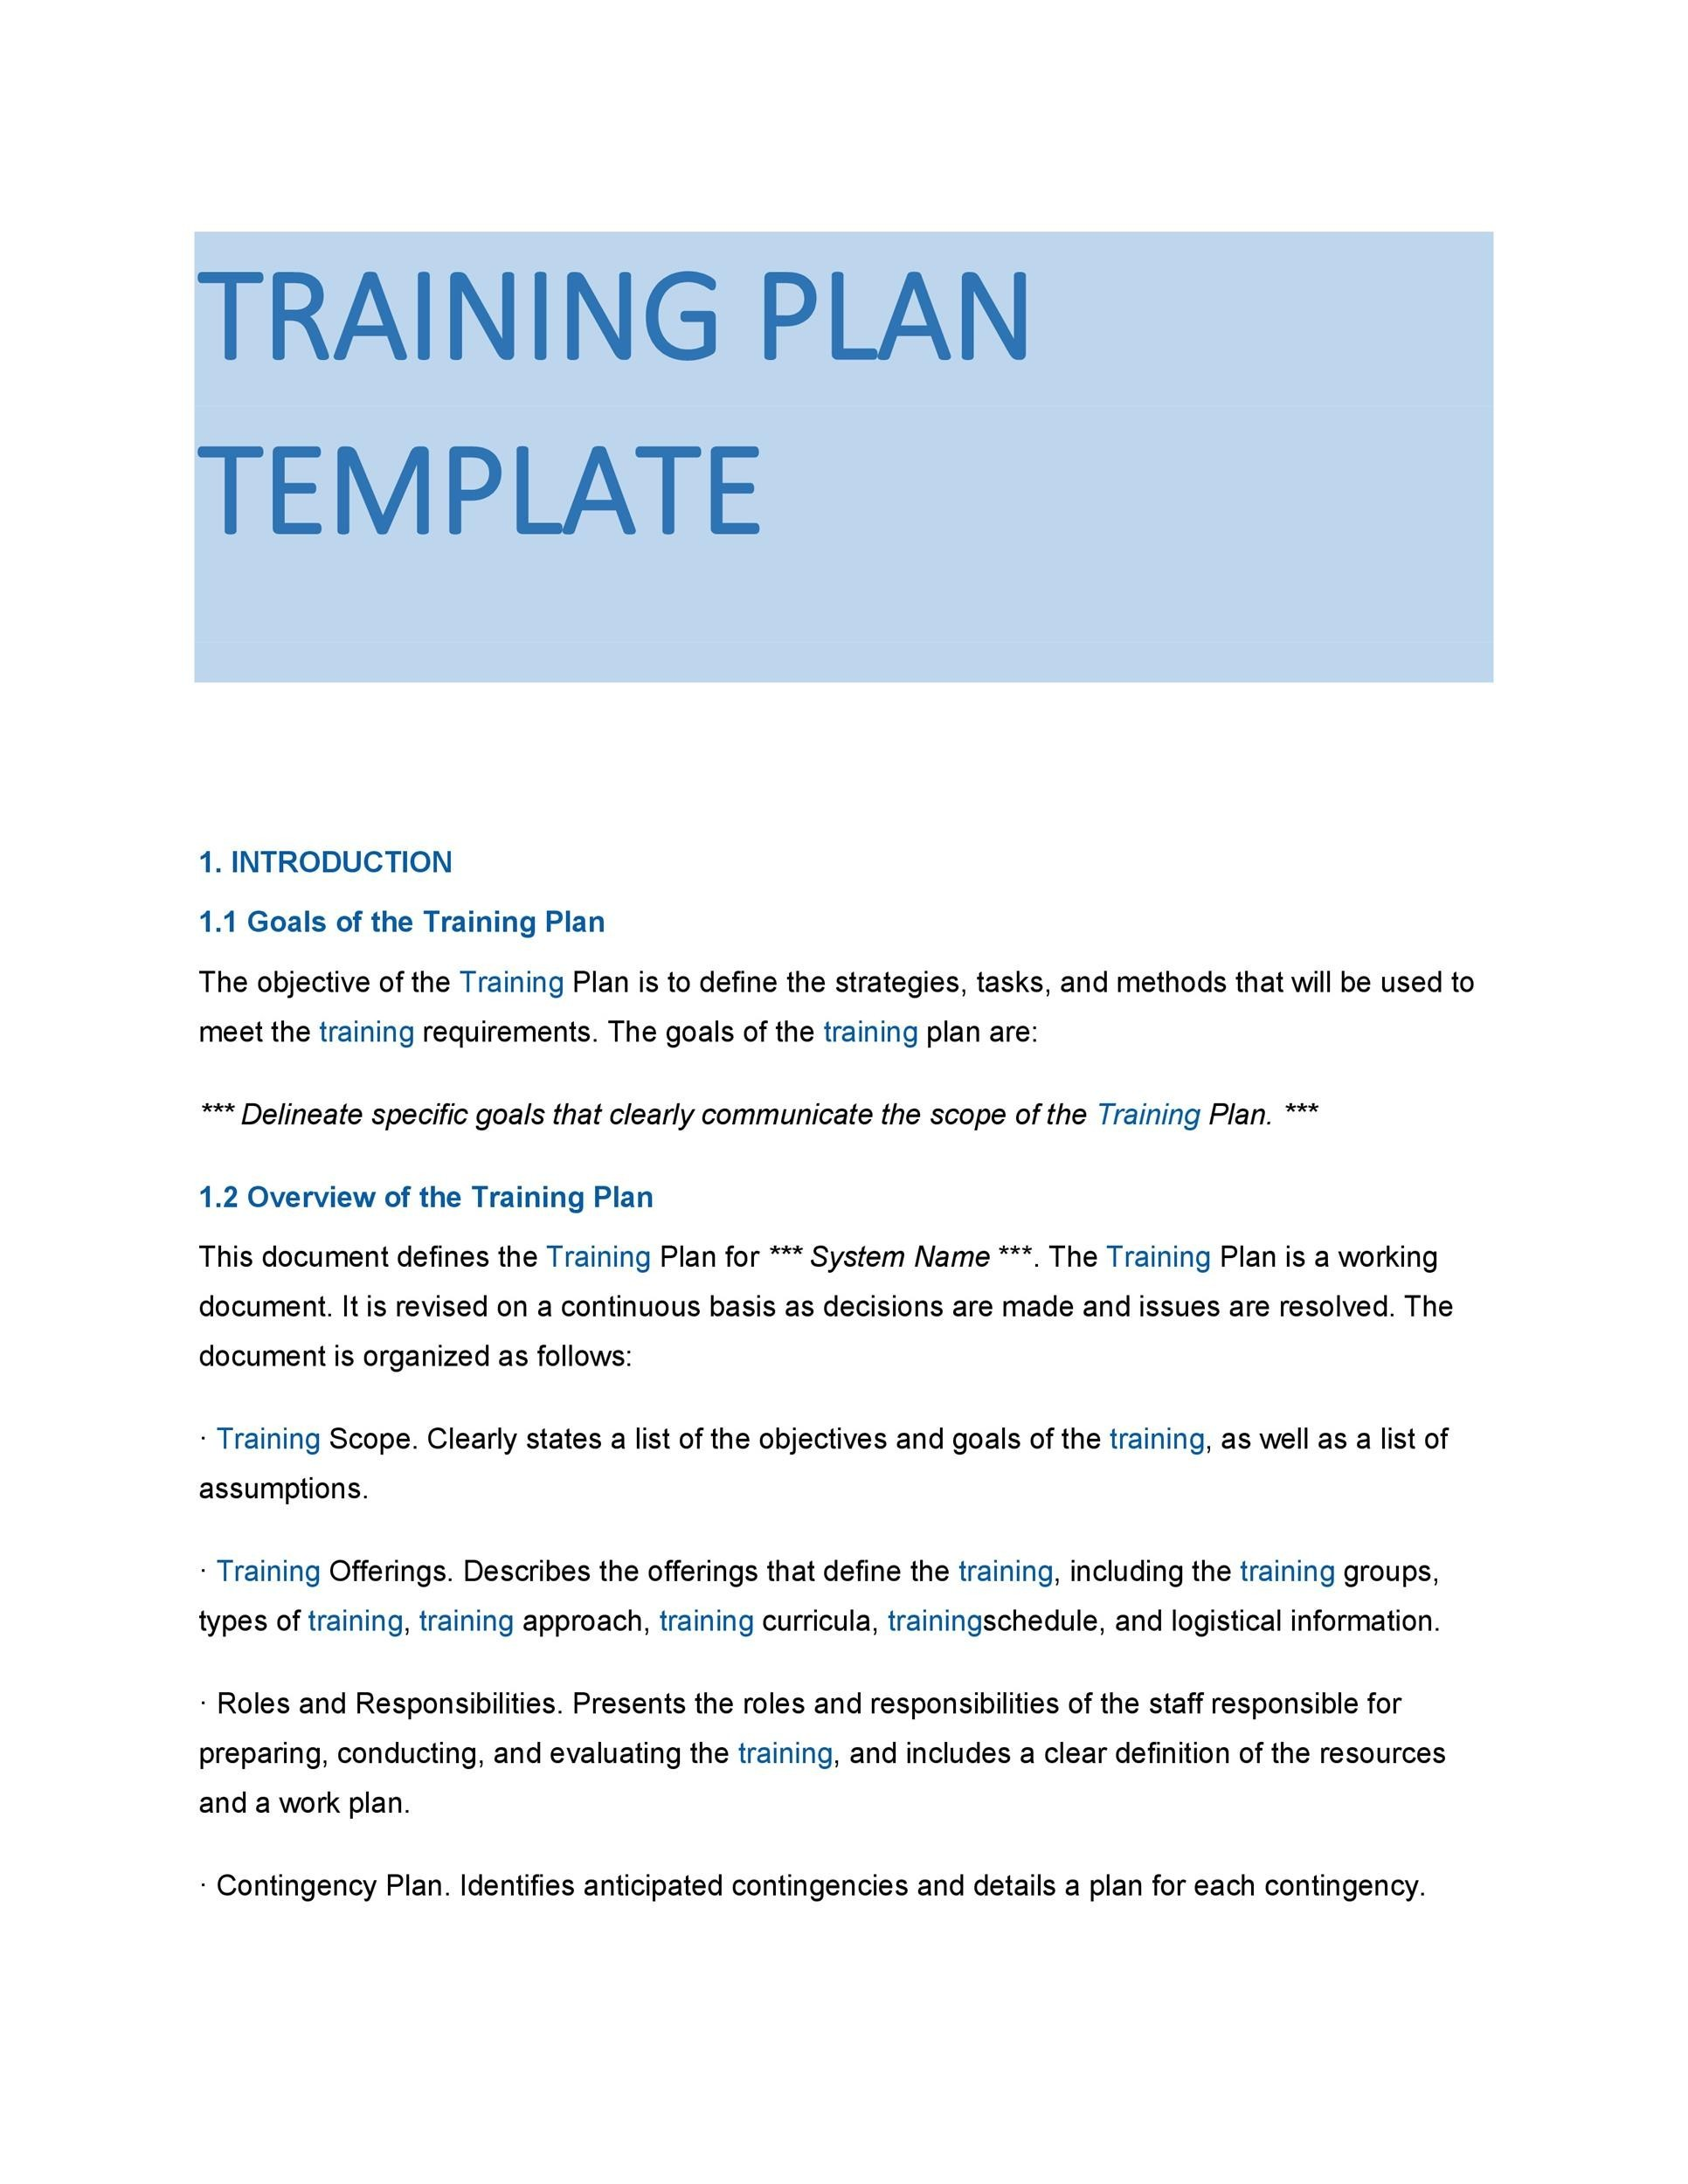 Training Manual Template Word 2010 from templatelab.com